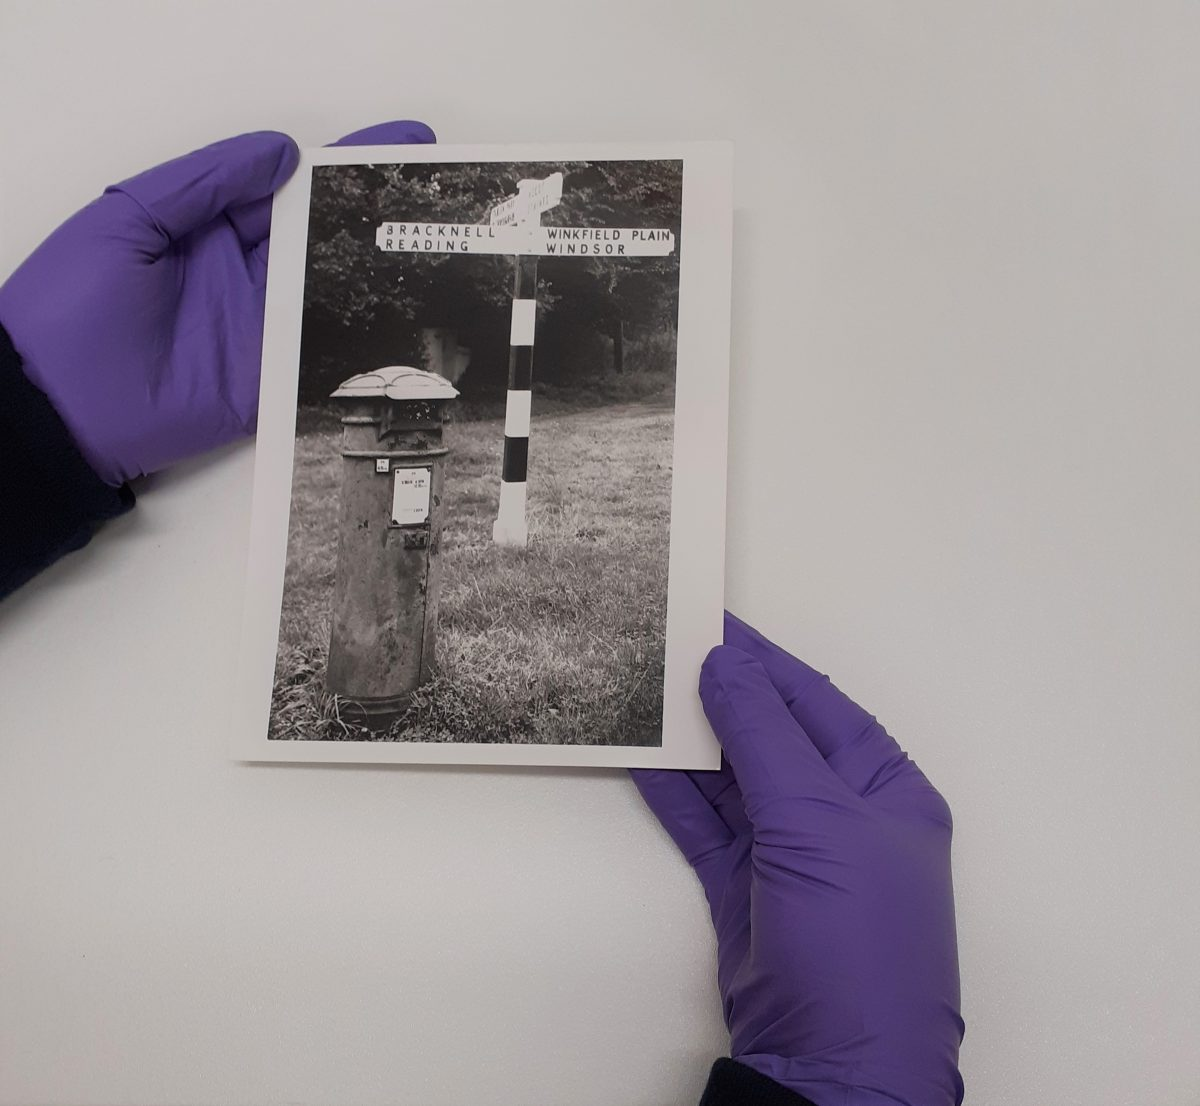 a black and white photograph of a pillar box and sign post is held in two hands wearing purple nitrile gloves. One hand is on the left hand edge, the other holds the bottom right hand corner